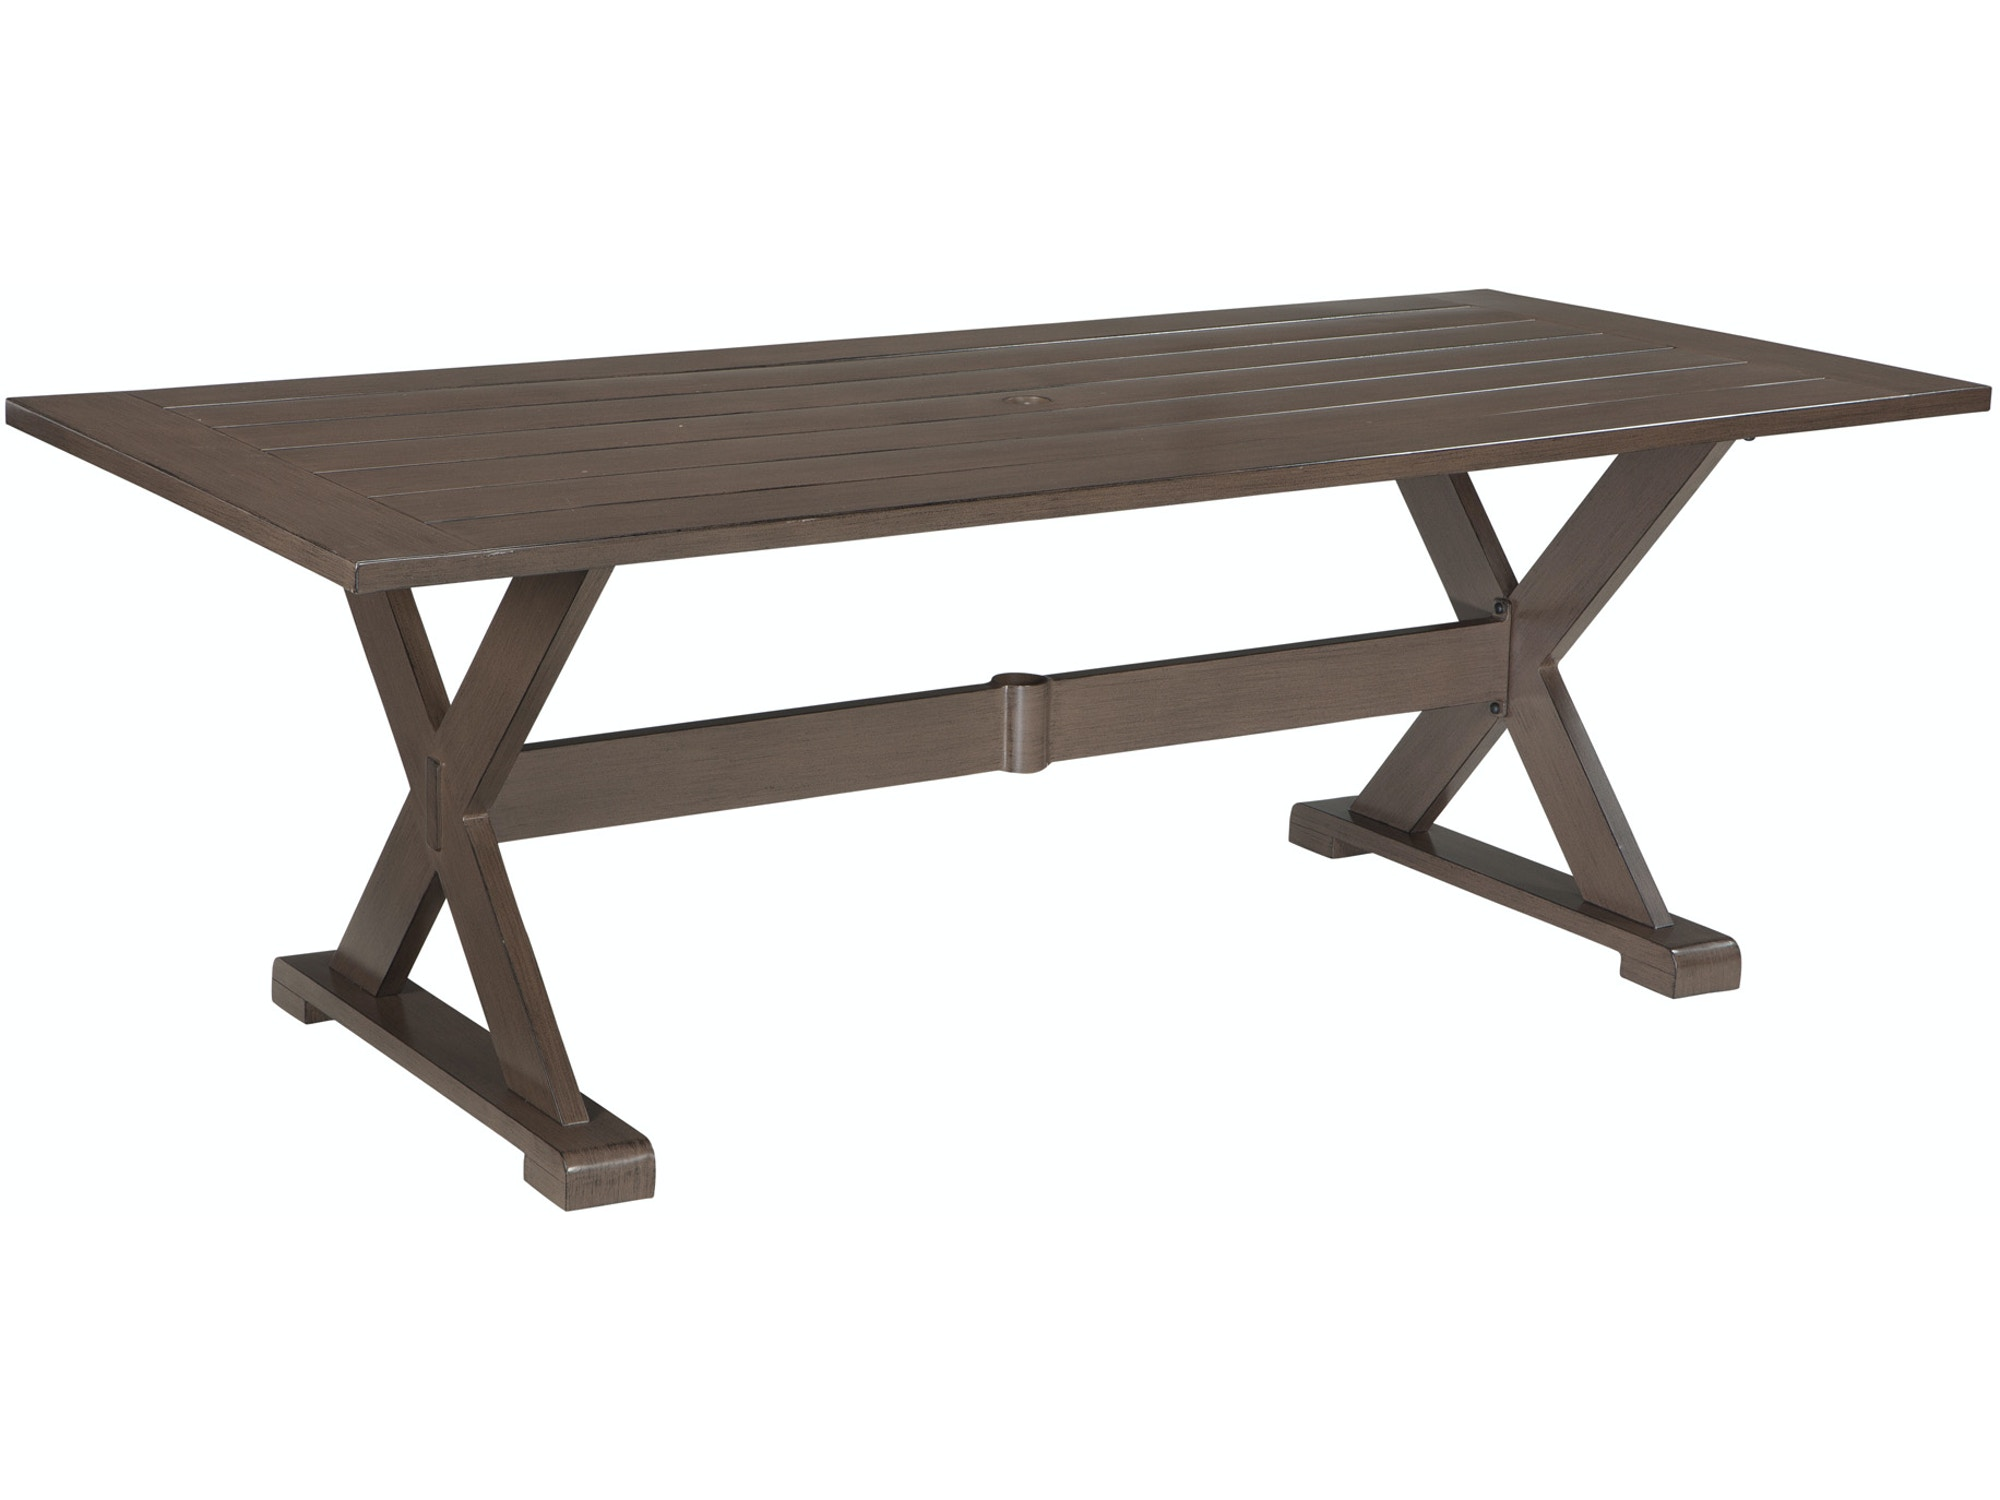 Moresdale Outdoor Dining Table 053911